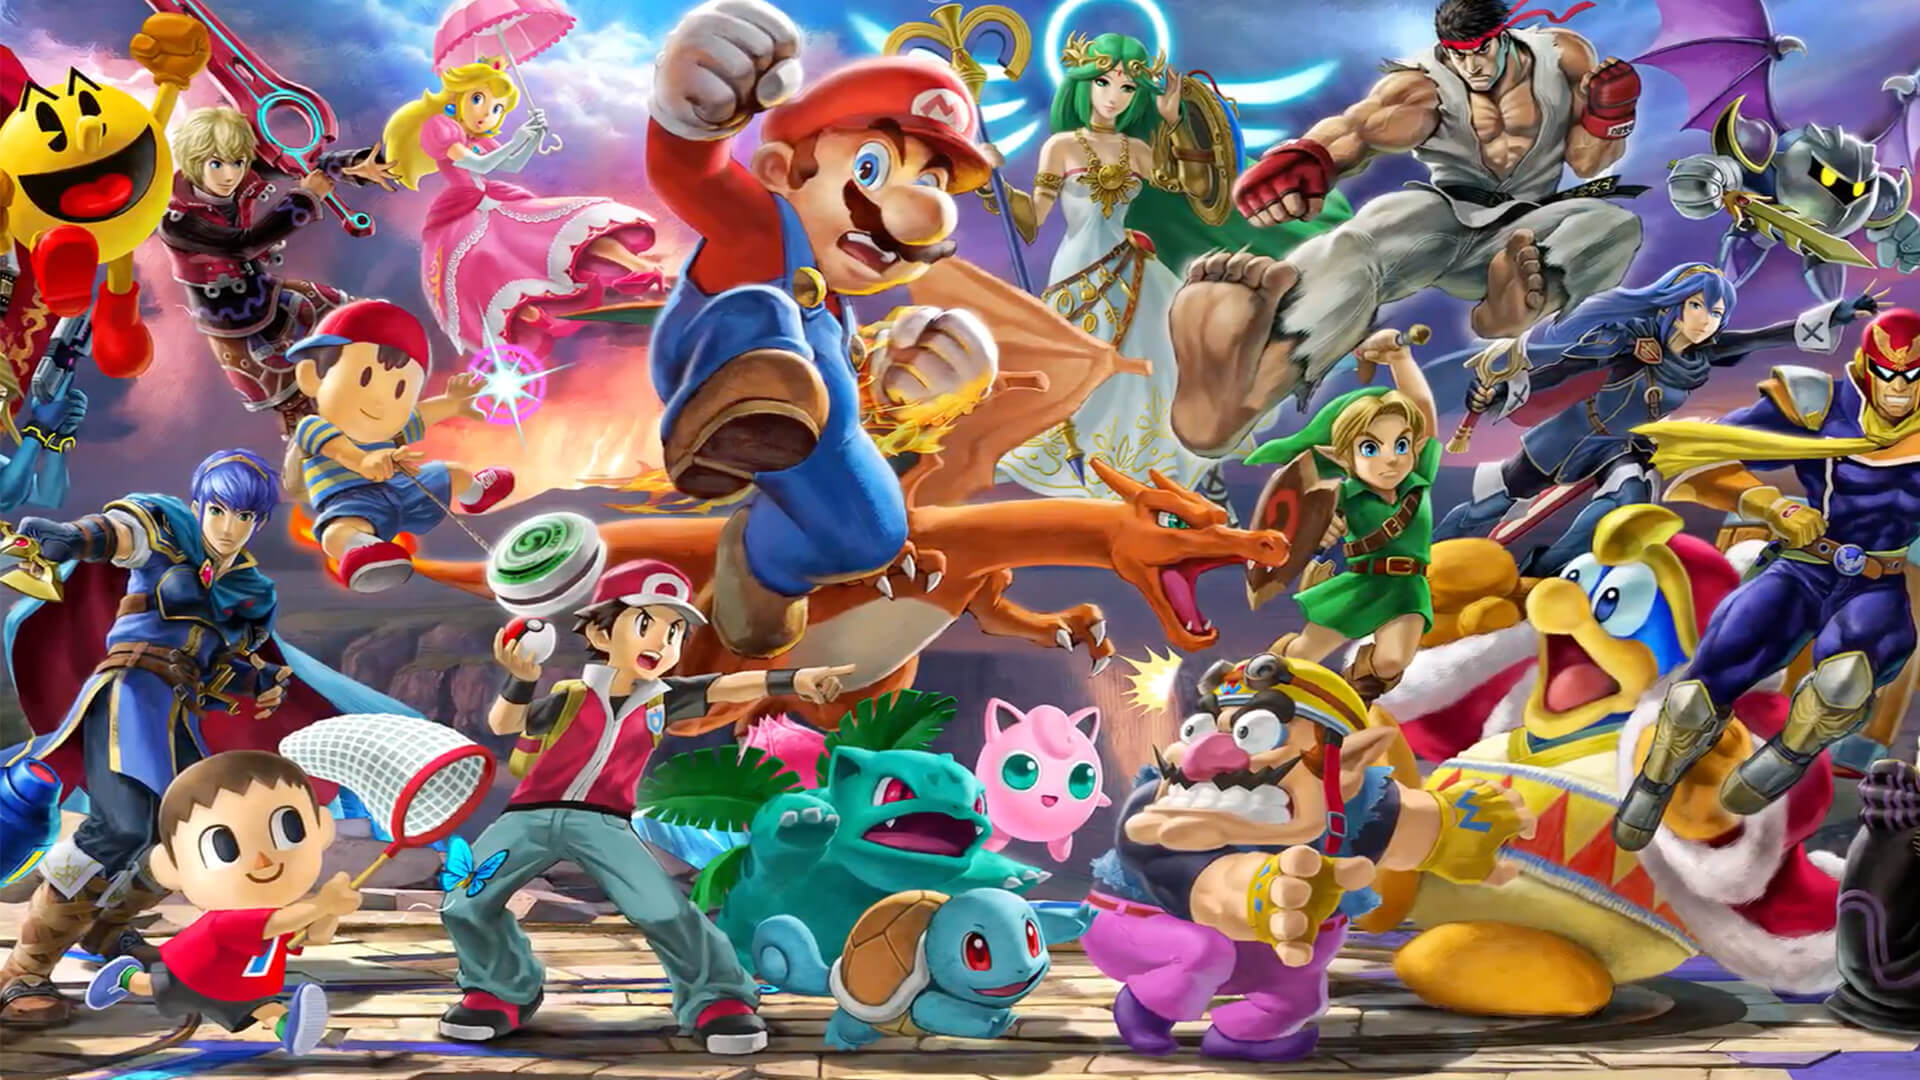 Super Smash Bros. Ultimate Nintendo Direct Announced